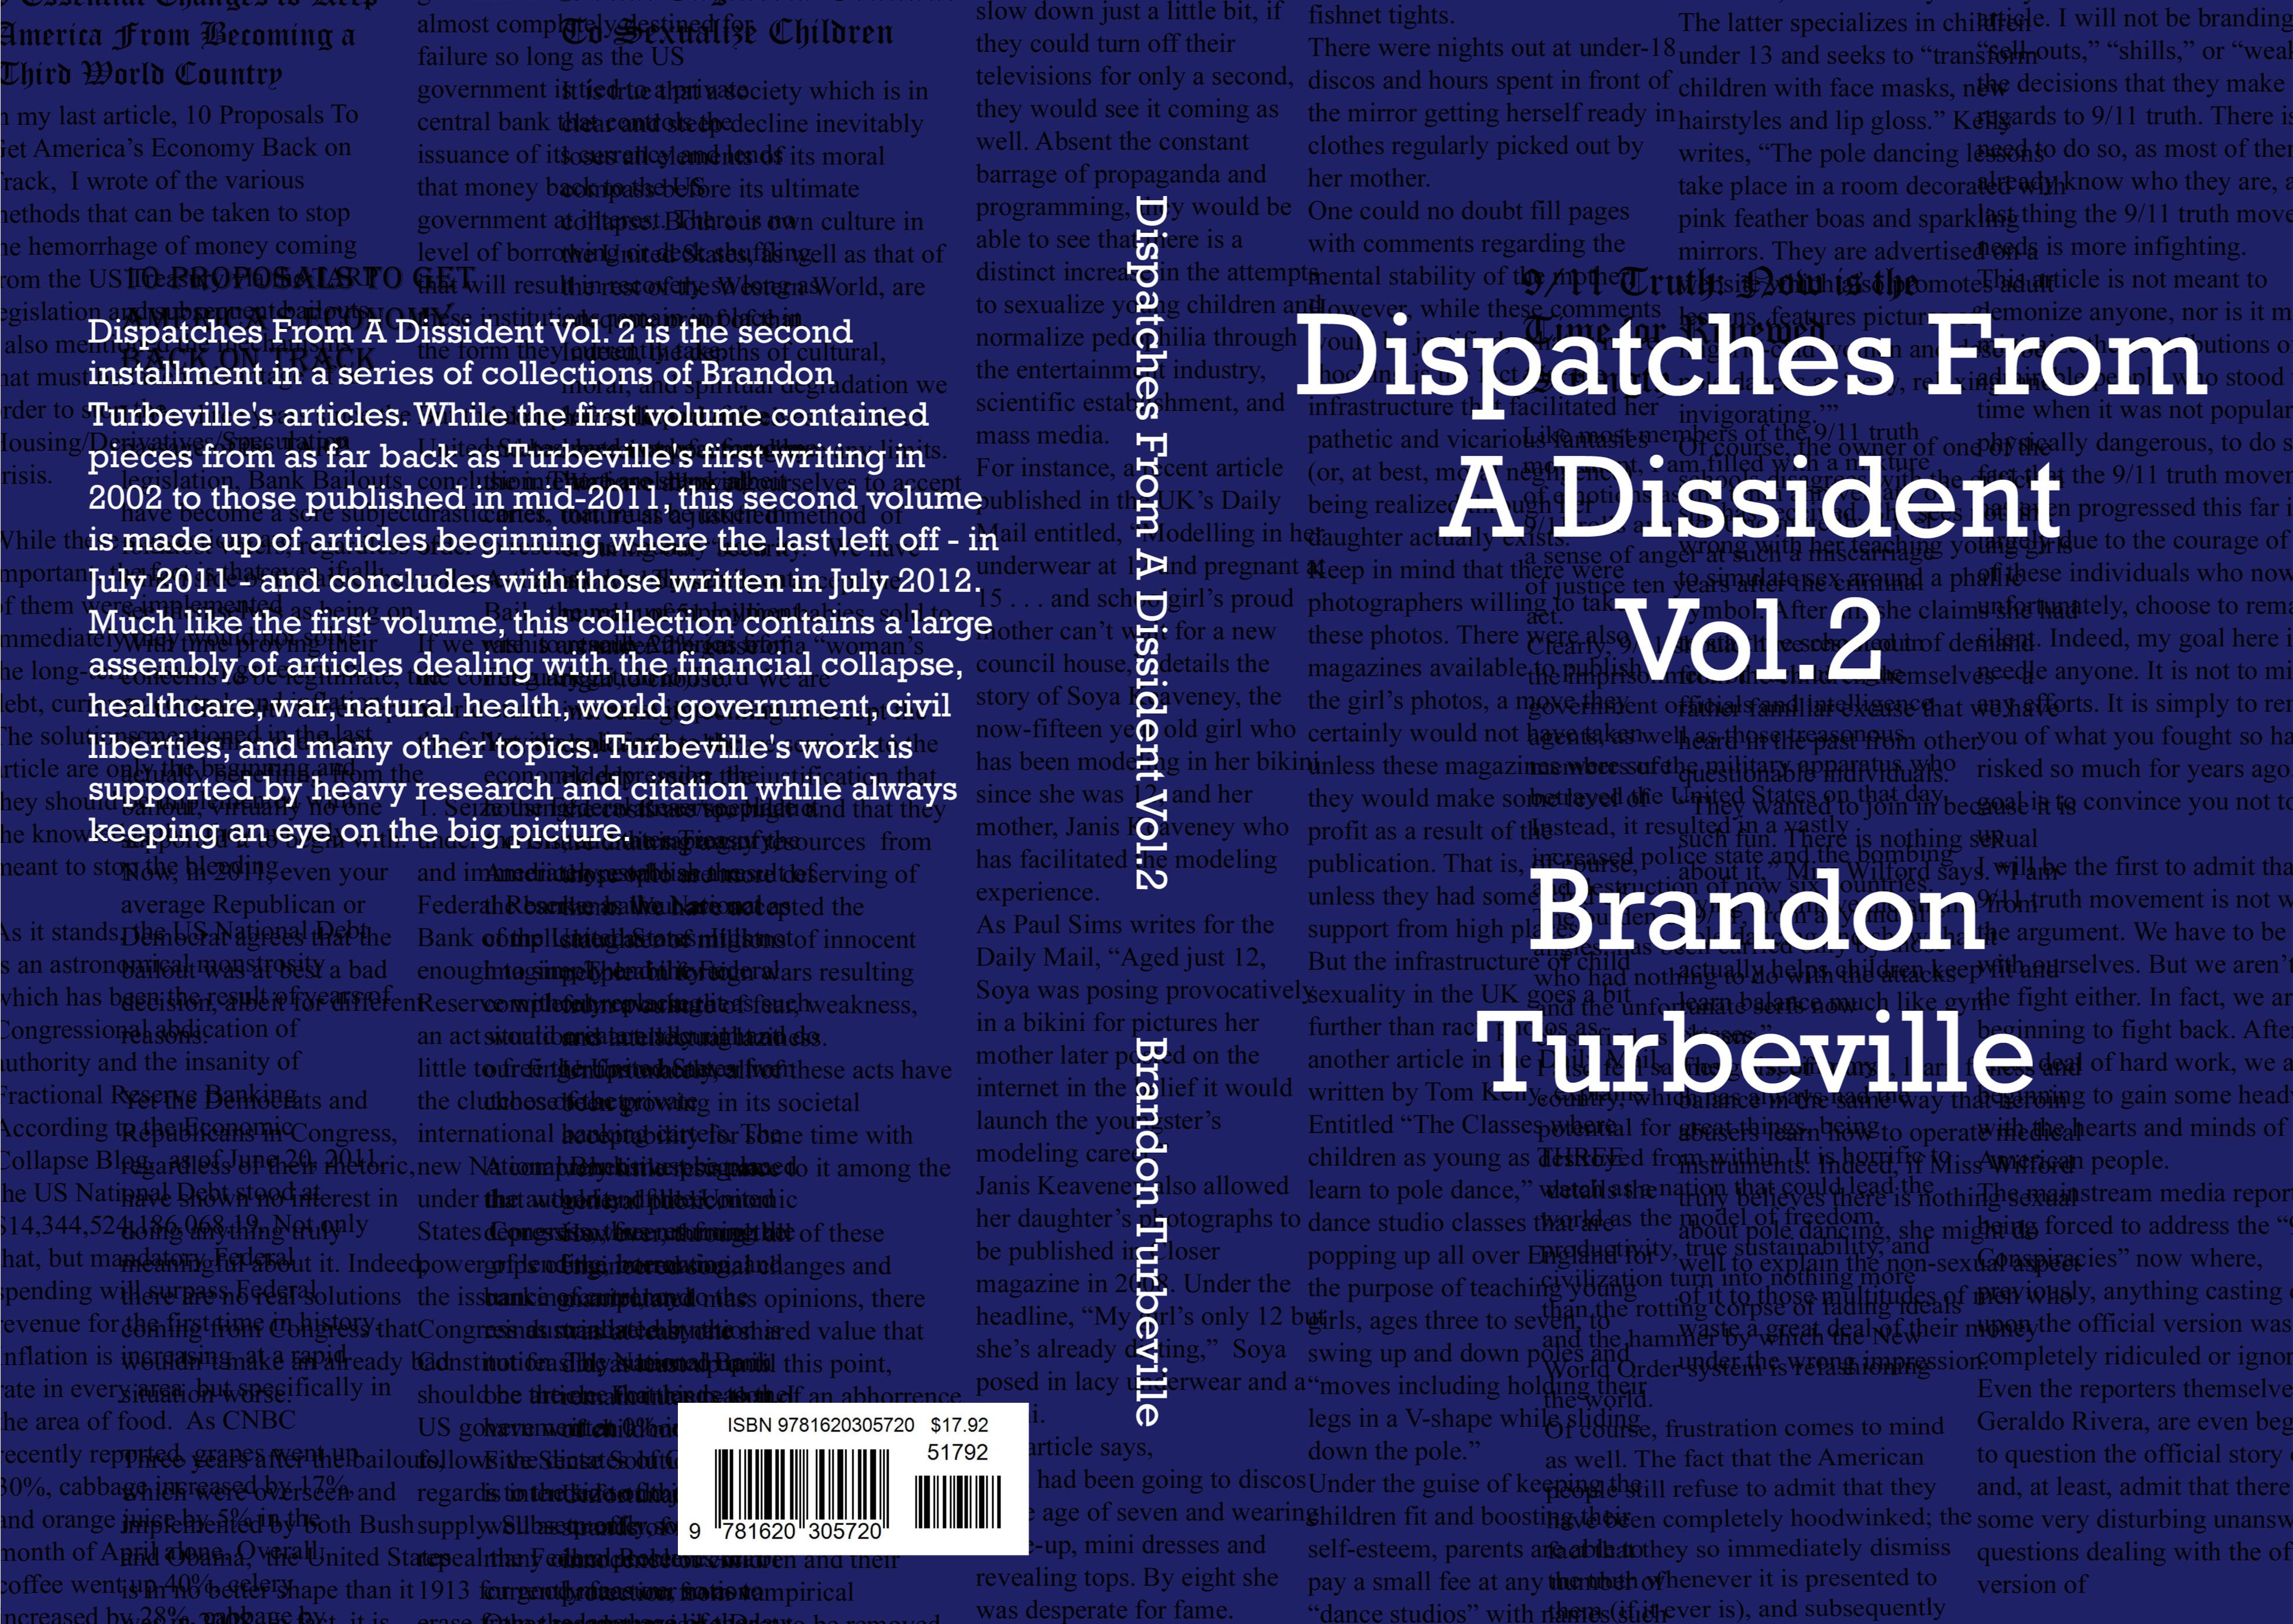 Dispatches From A Dissident Vol. 2 cover image